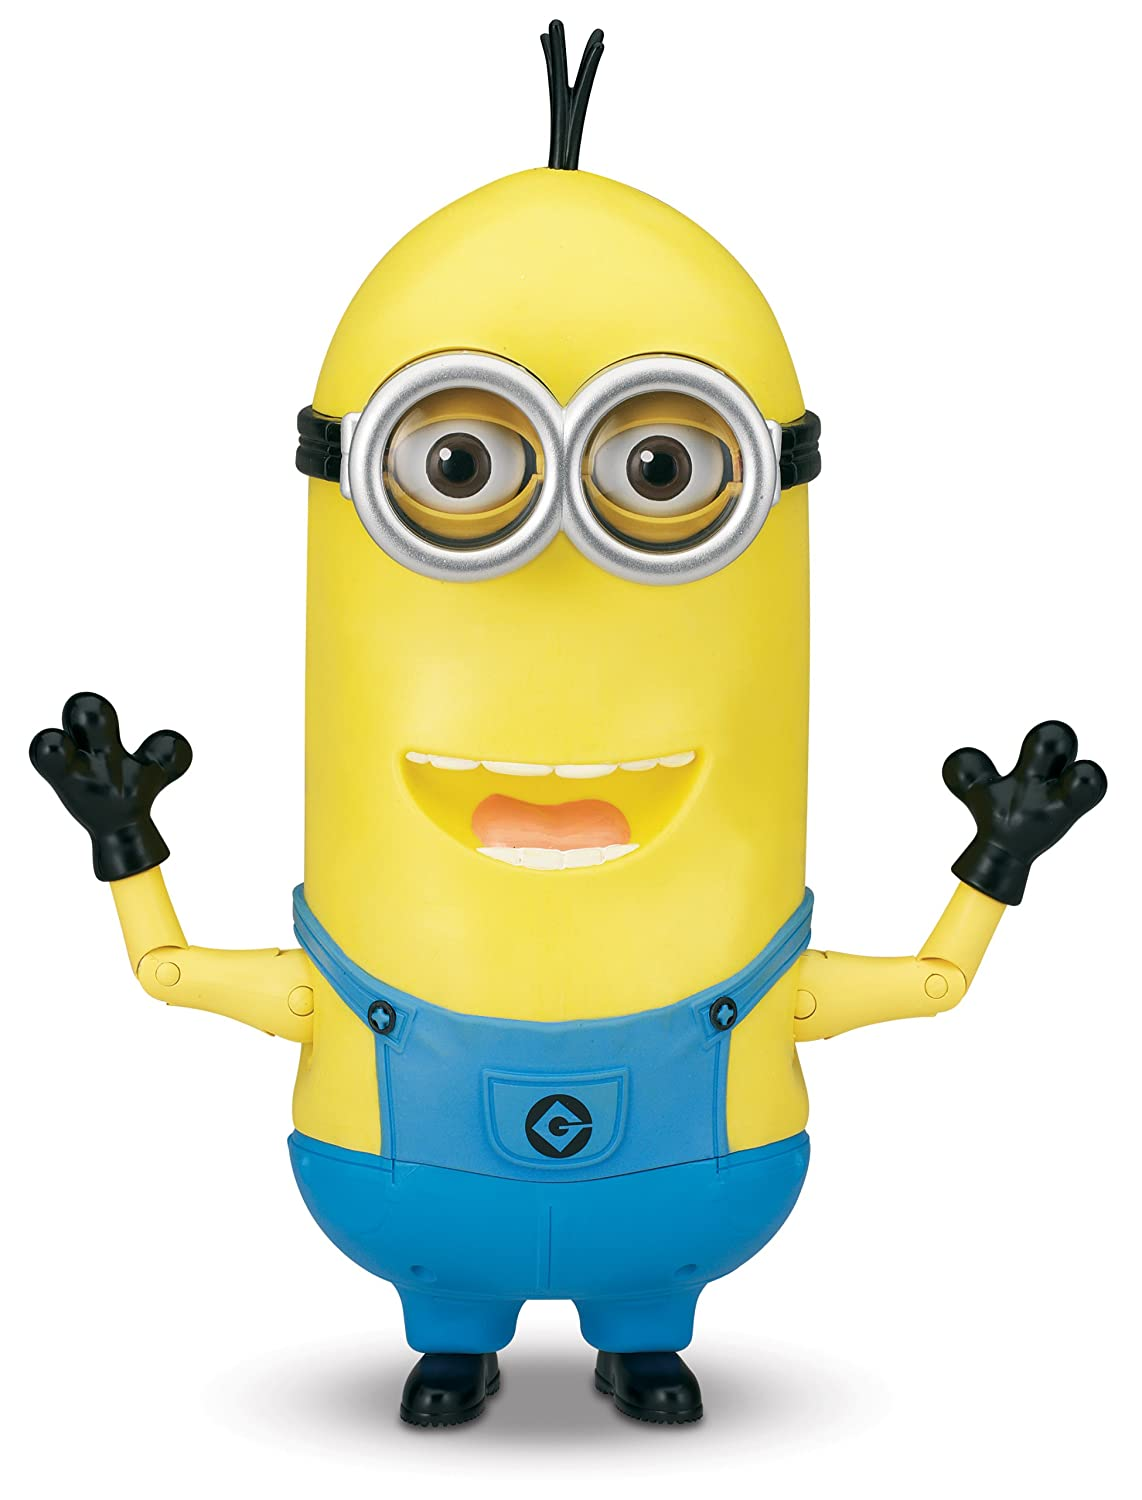 Amazon - Despicable Me Minion Tim The Singing Action Figure - $13.94